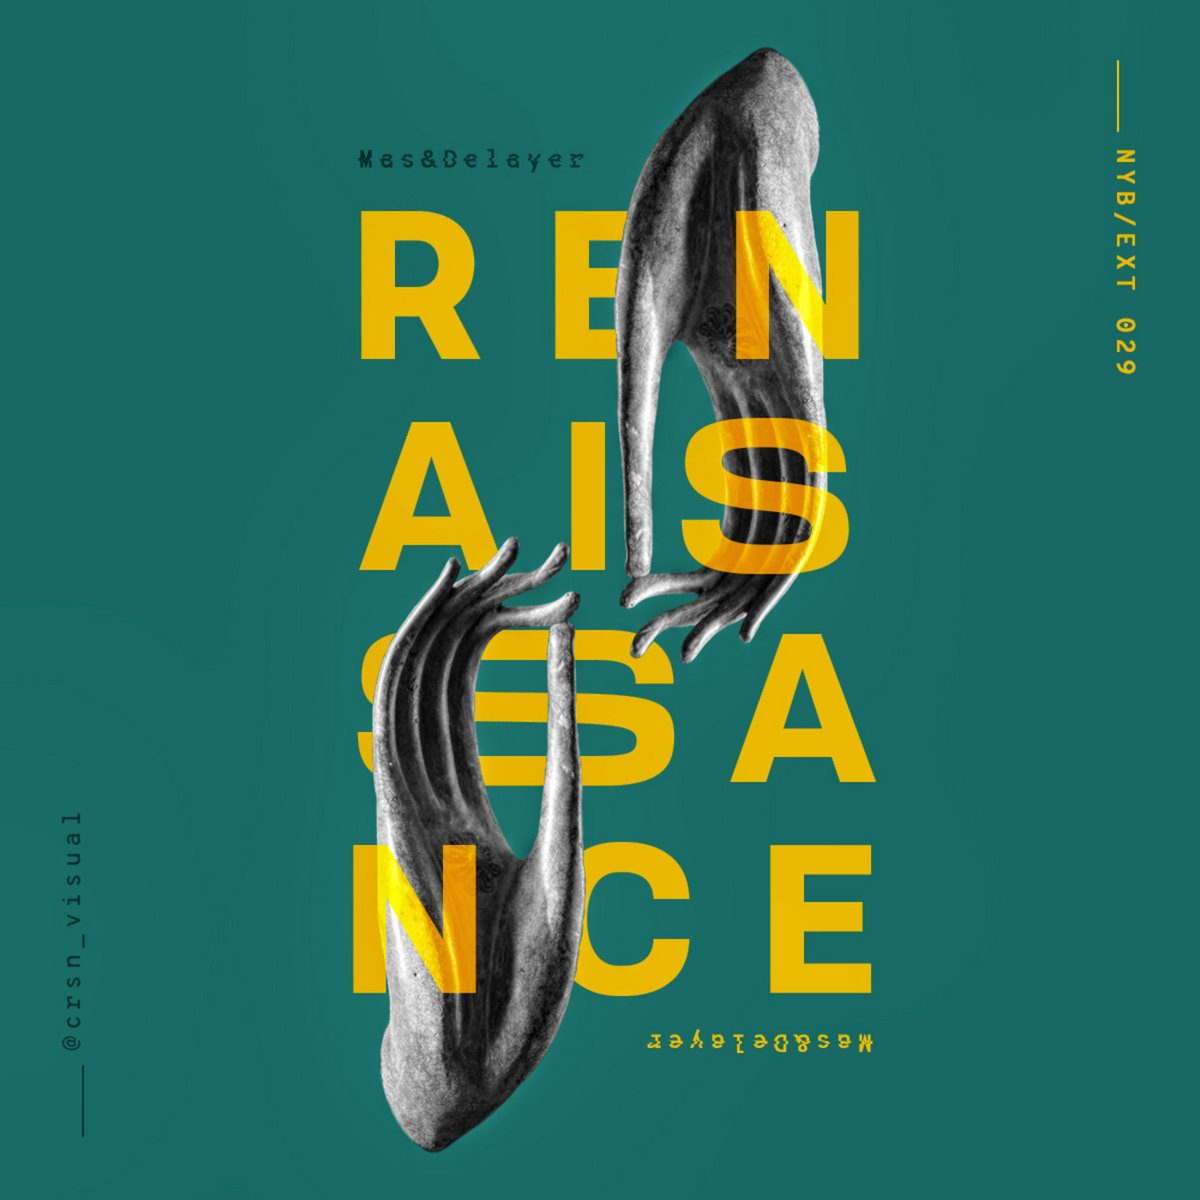 Mas&Delayer – Renaissance